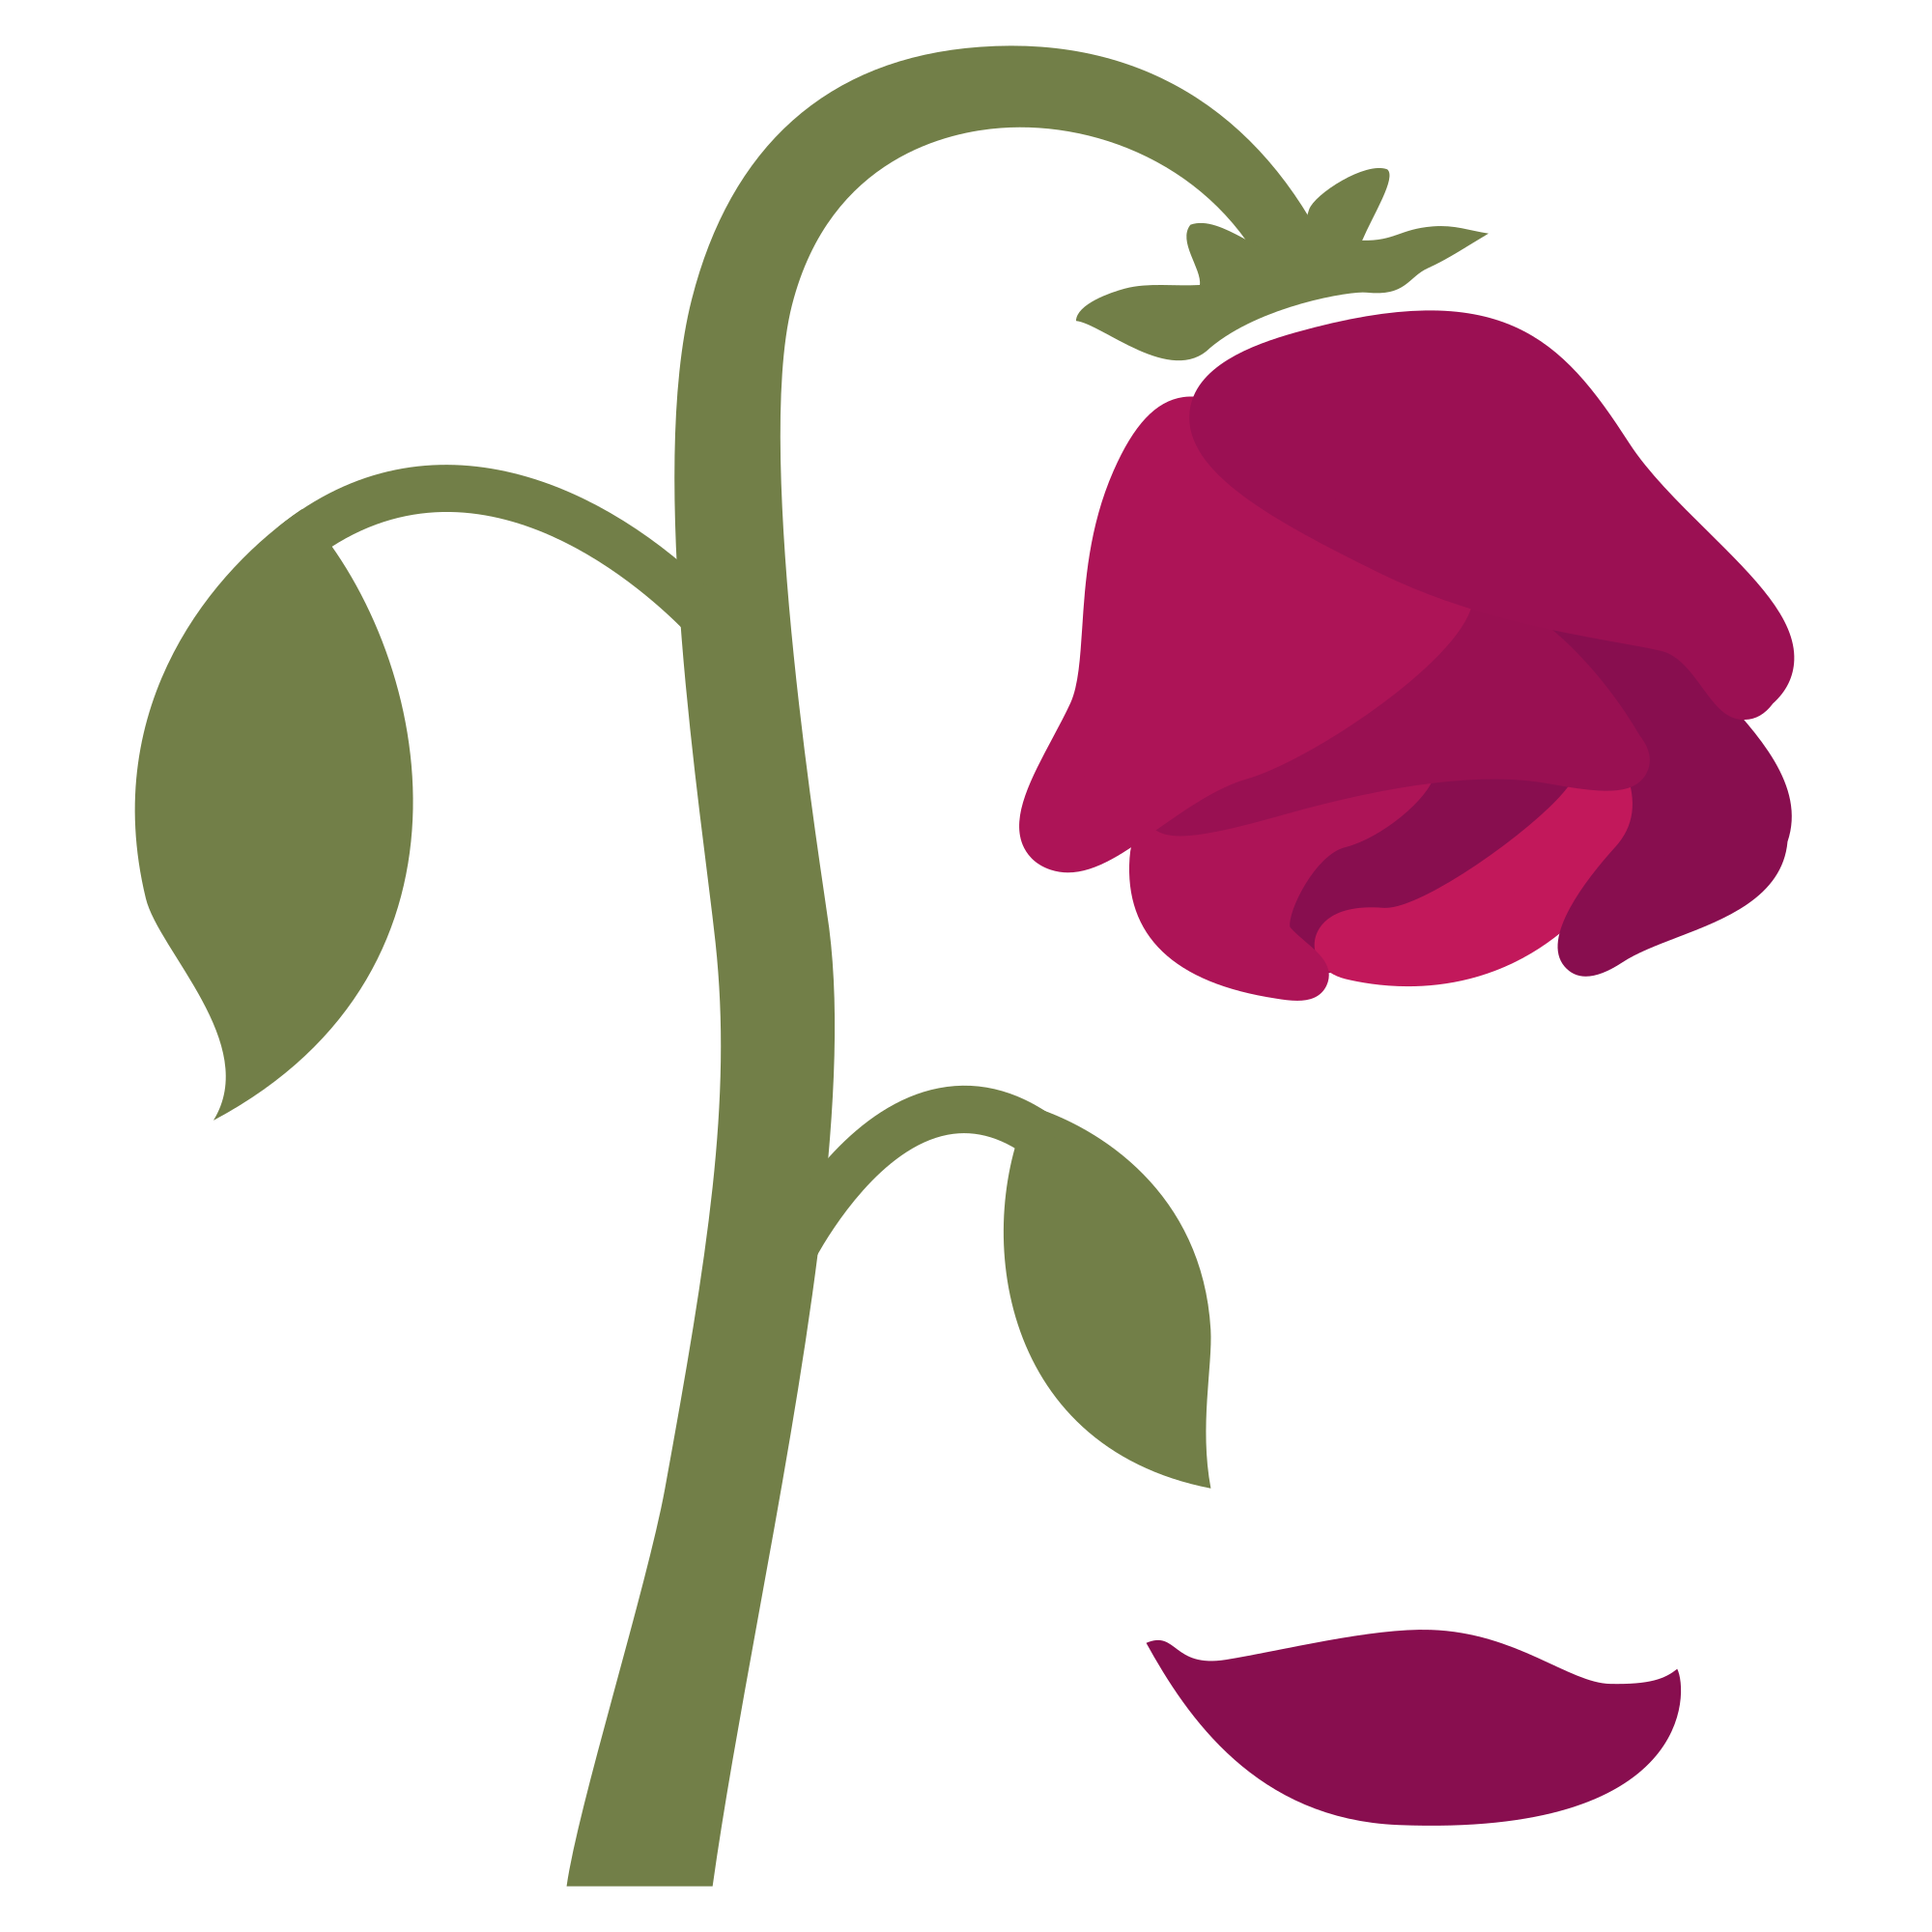 Flower emoji clipart vector library library File:Emoji u1f940.svg - Wikimedia Commons vector library library